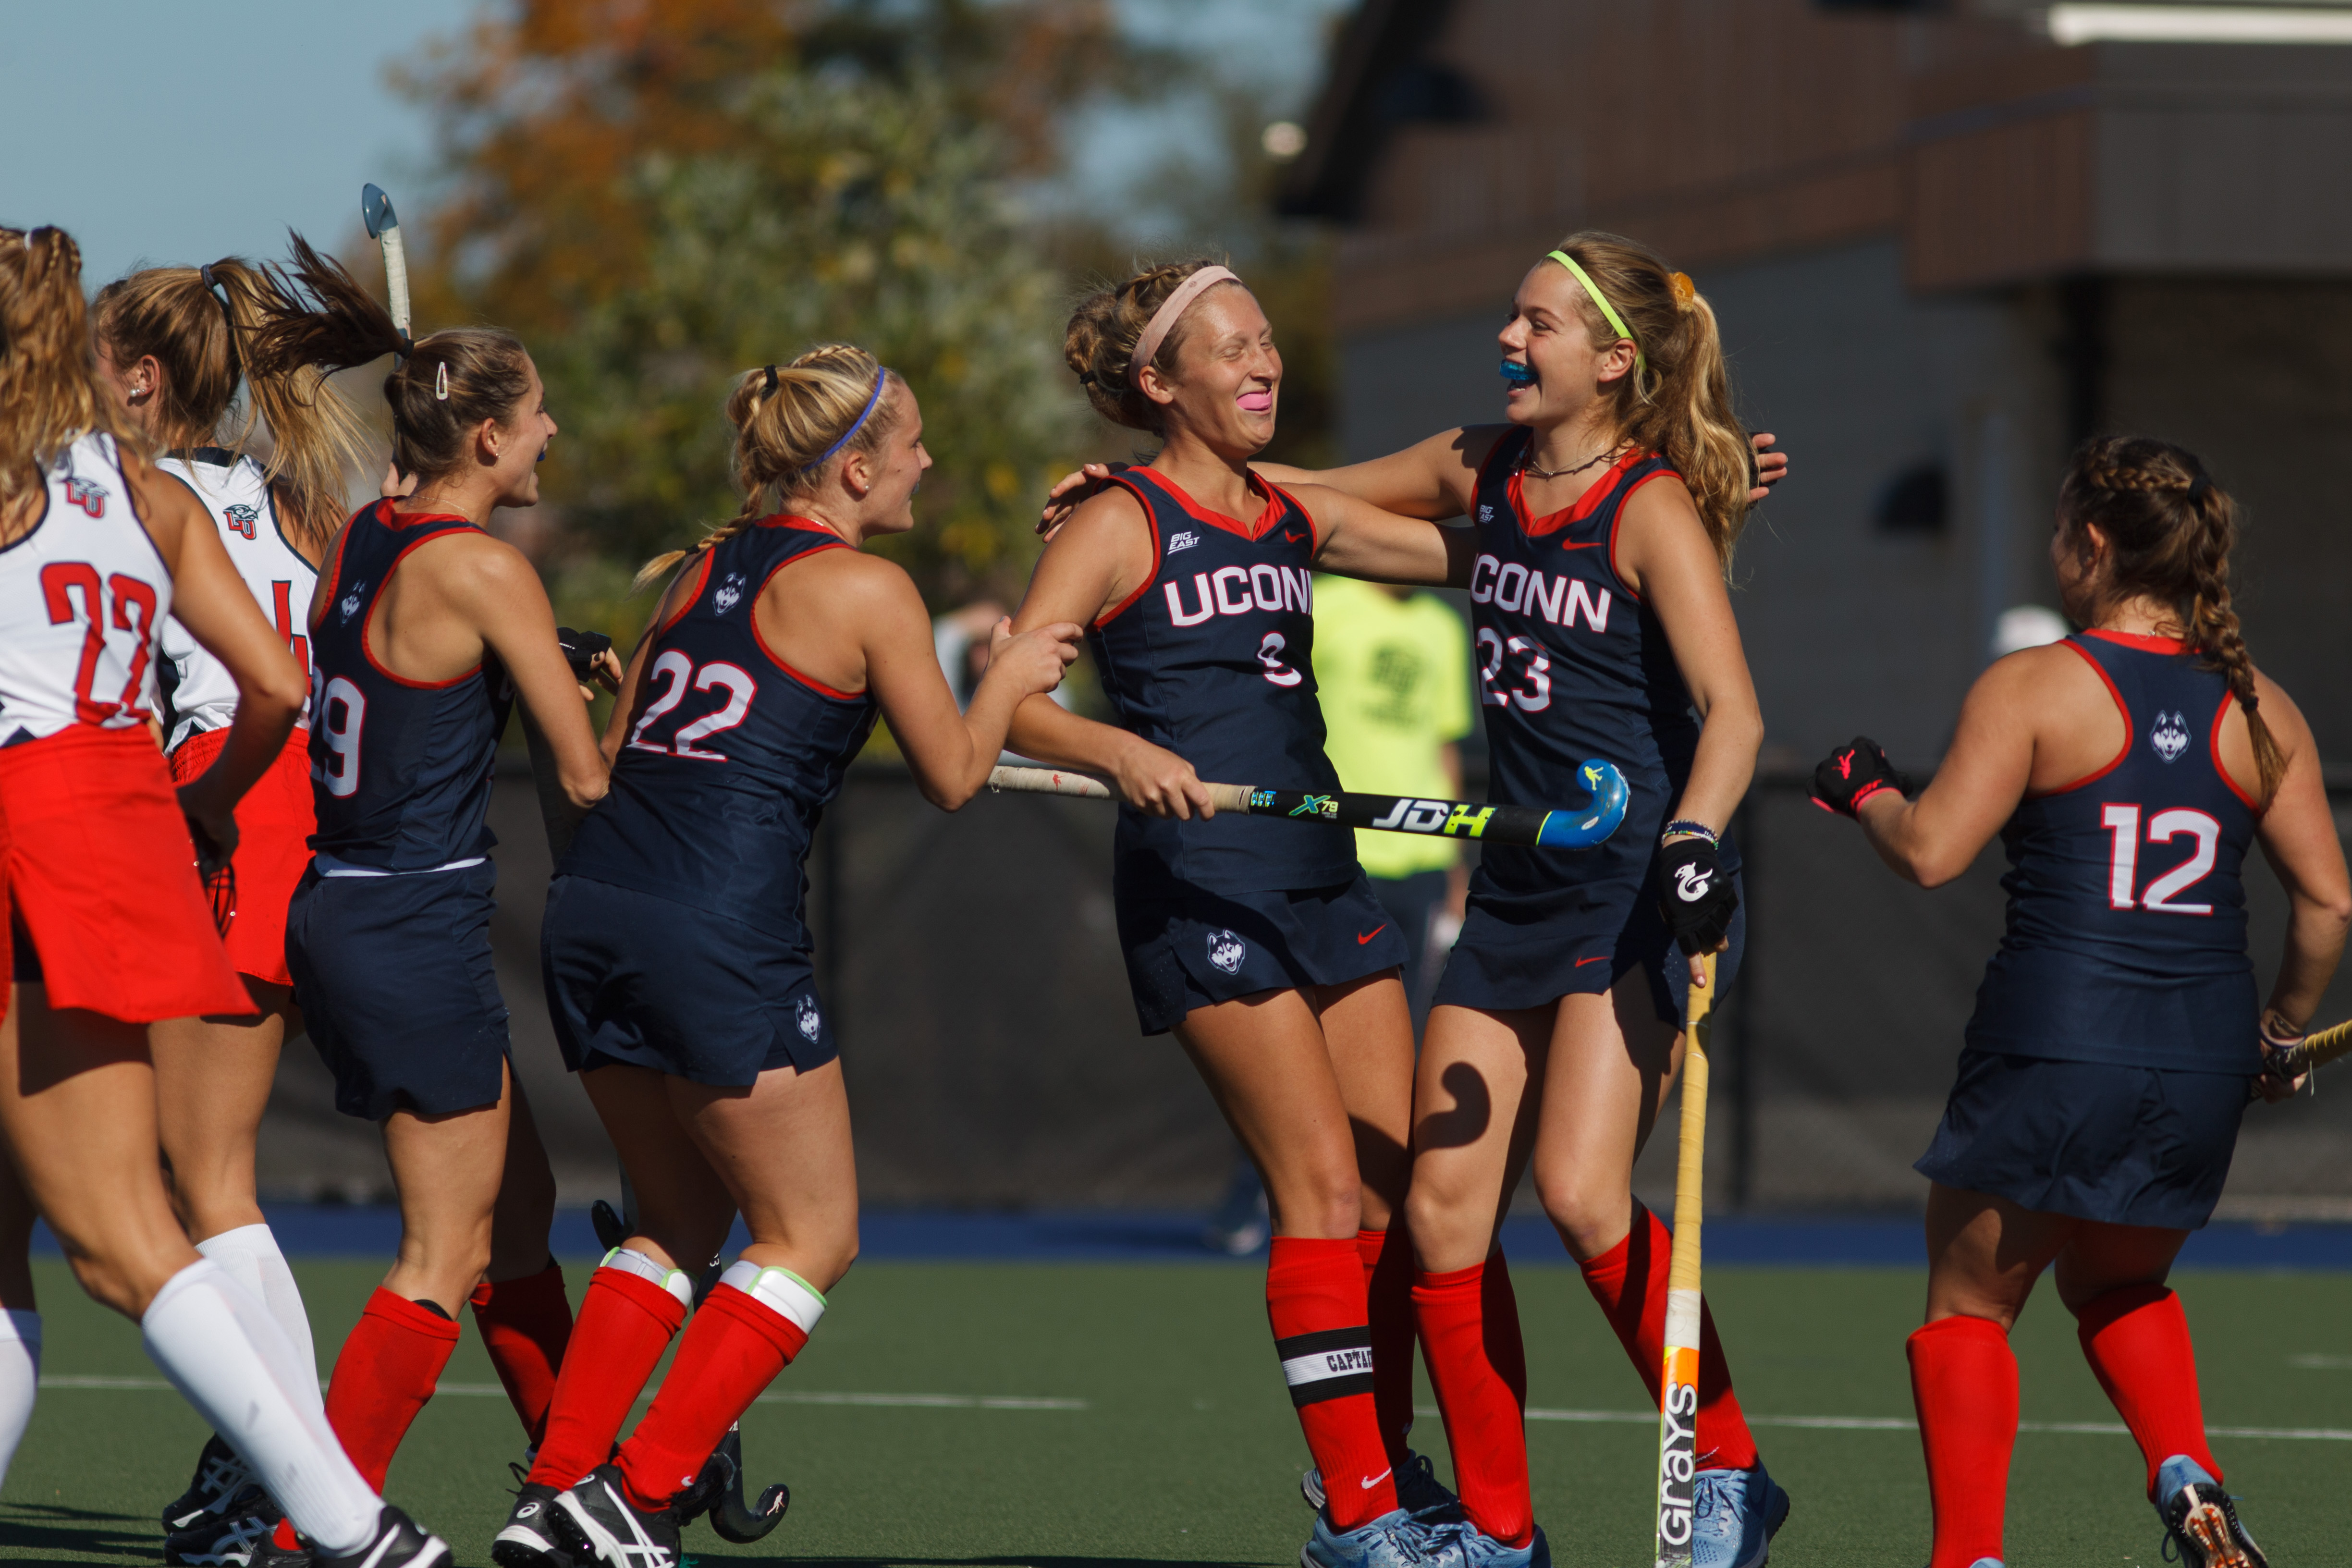 UConn defeated Liberty 5-3 to win the Big East Field Hockey Championship on Nov. 4, 2018. (Joel Coleman for UConn)